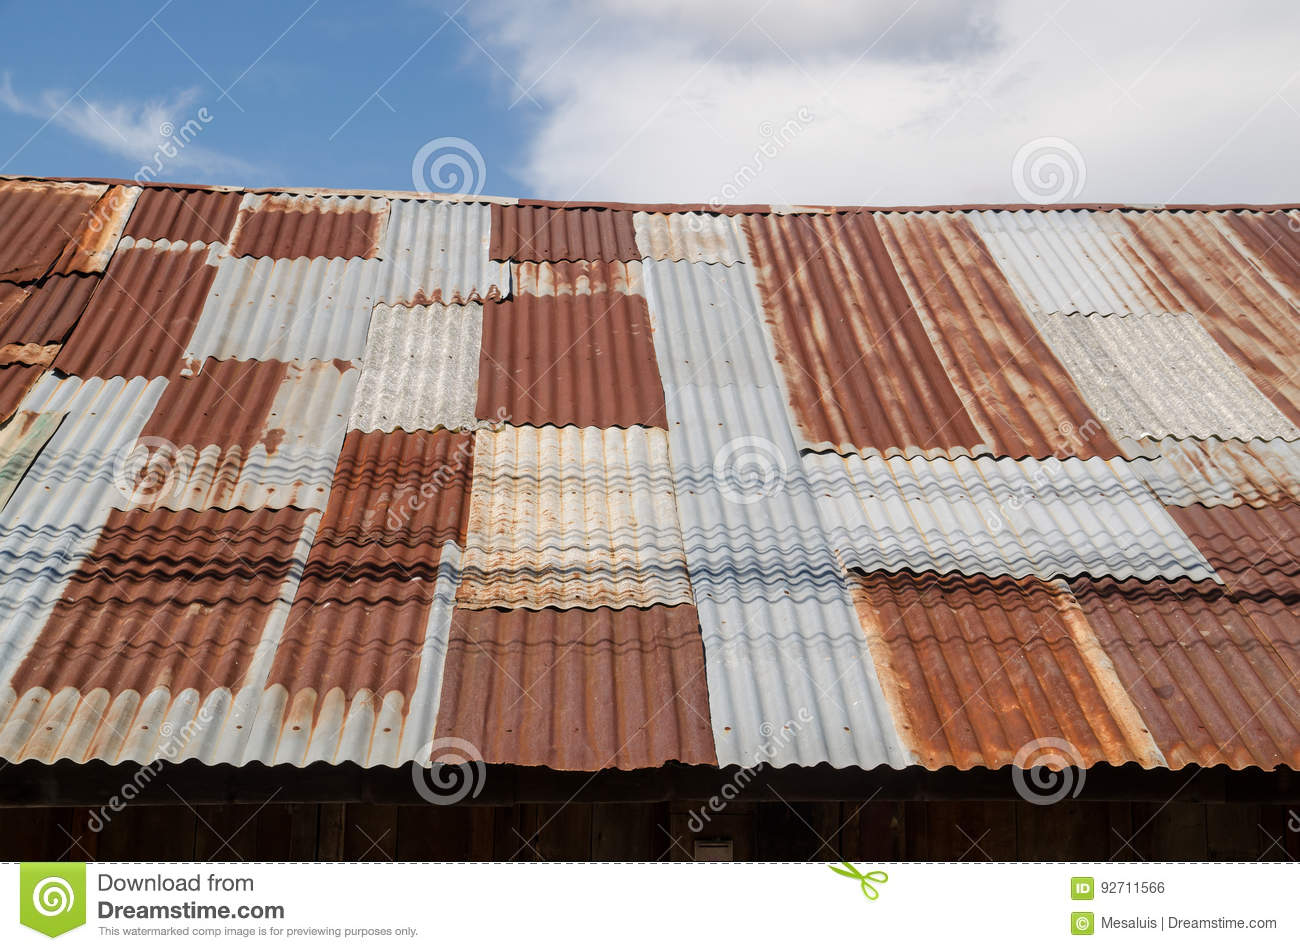 Galvanized Iron Roof Royalty Free Stock Photography